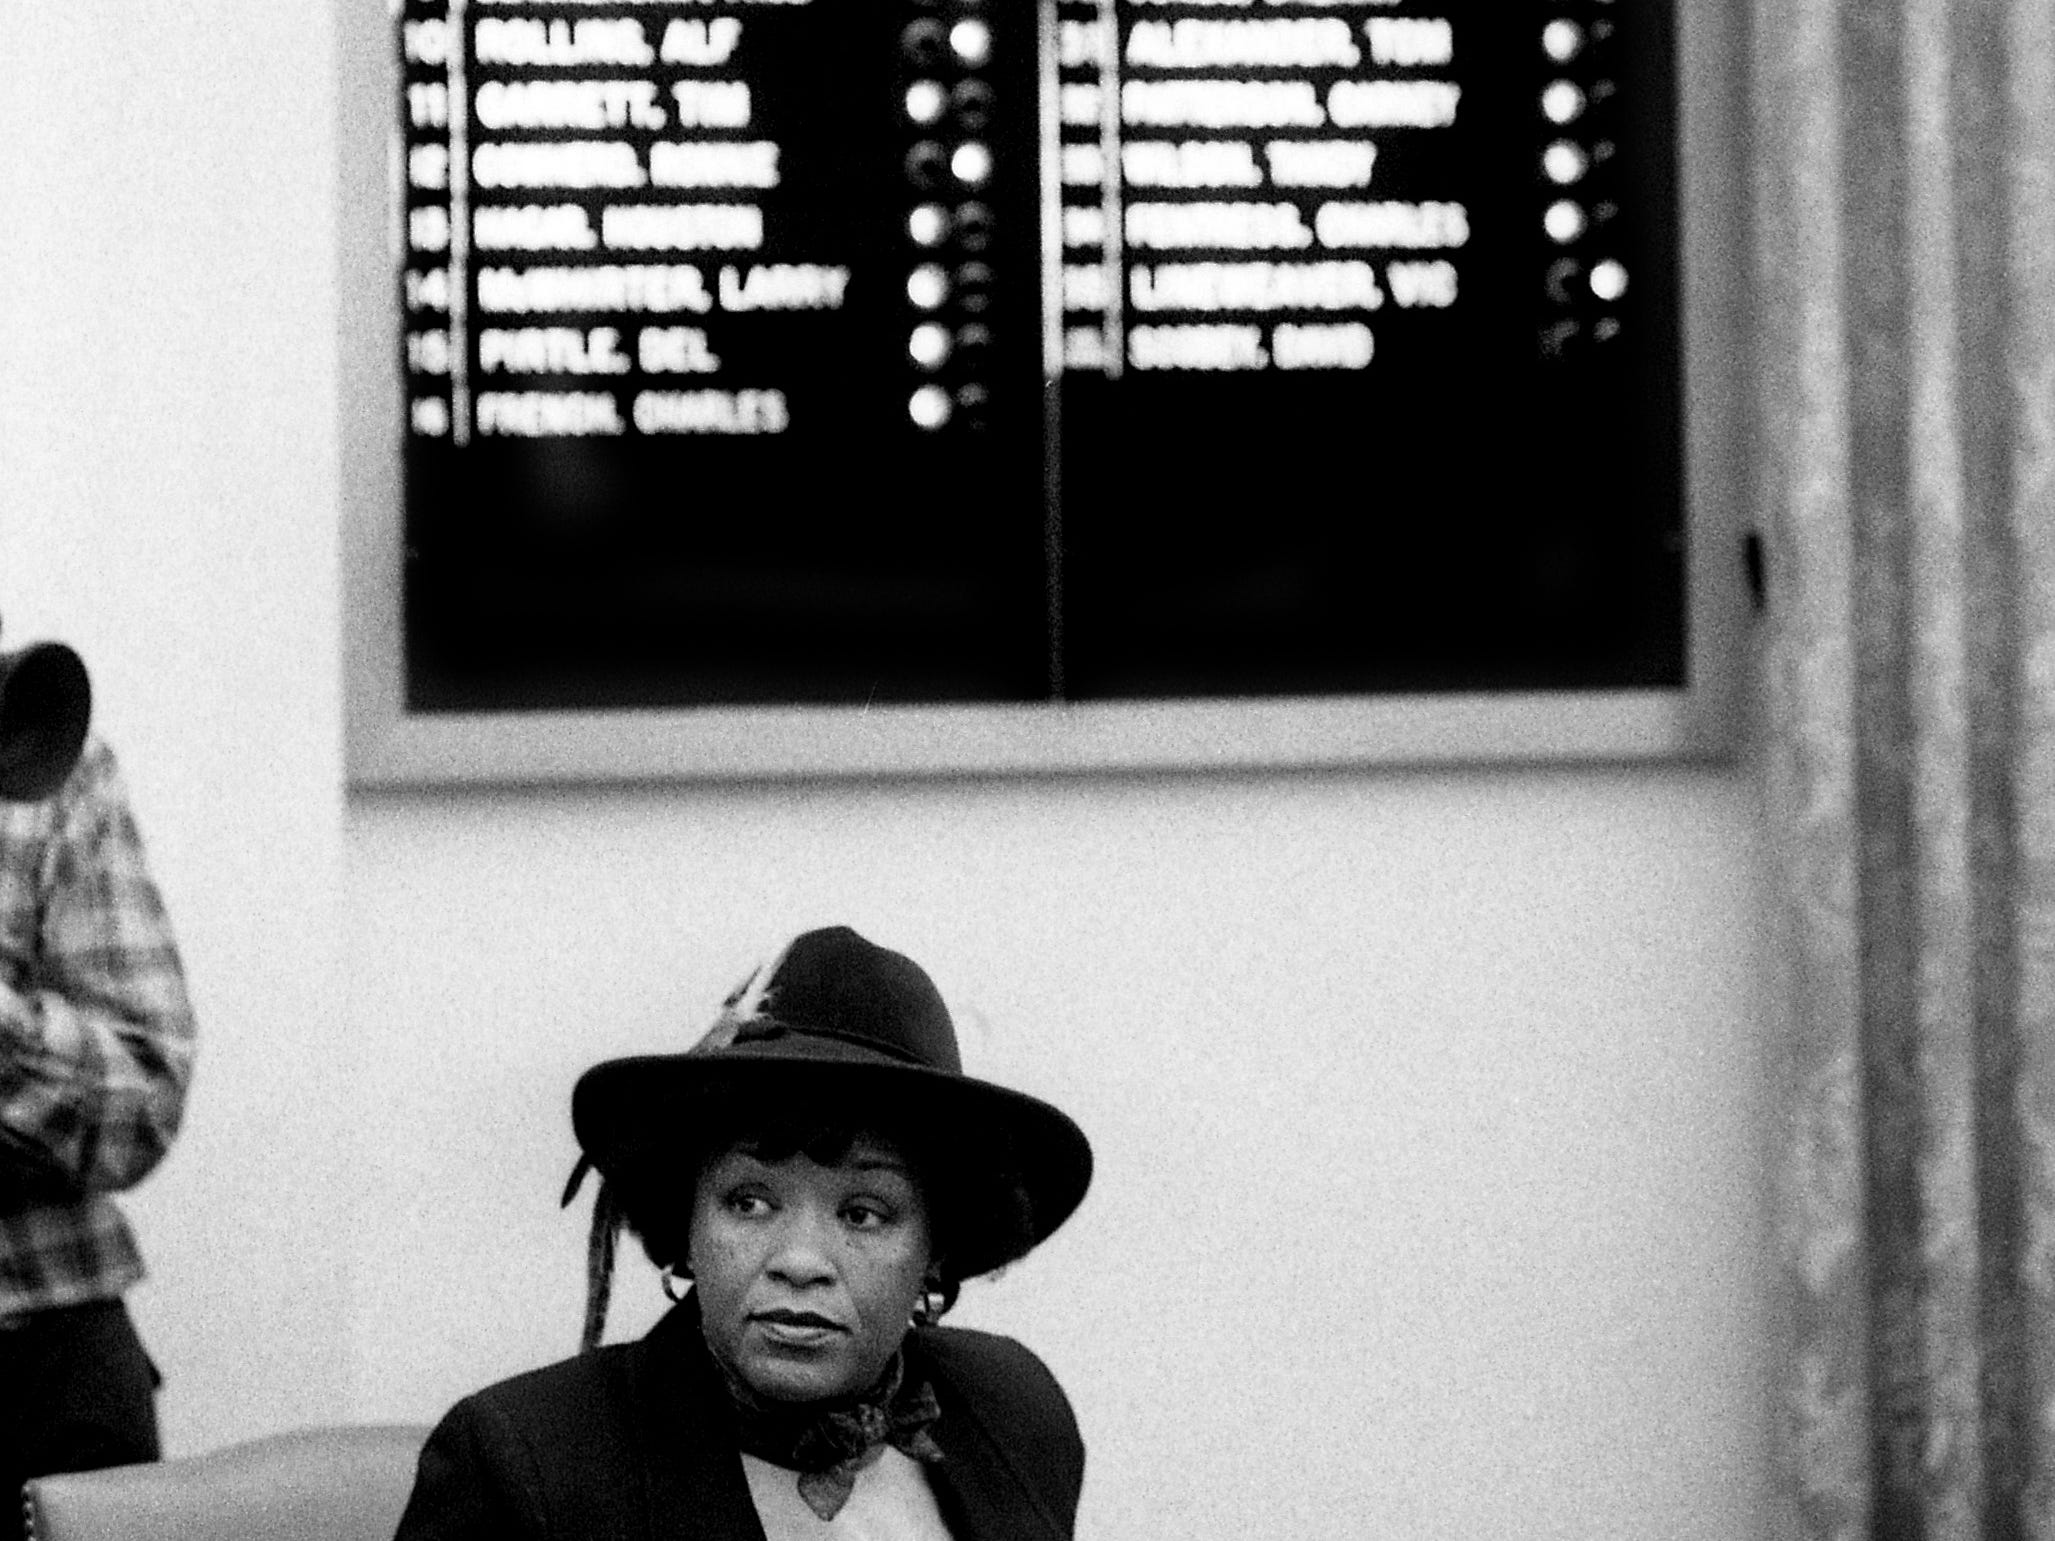 Metro Councilwoman Thelma Harper sits beneath the electronic tally board that shows the vote on final reading of a bill allowing Metro to condemn land for testing four potential landfill sites at the Metro Courthouse on March 7, 1989. Property on Neely's Bend, Hadley Bend, Whites Bend and Bells Bend sites may be condemned for testing after the 25-13 vote.